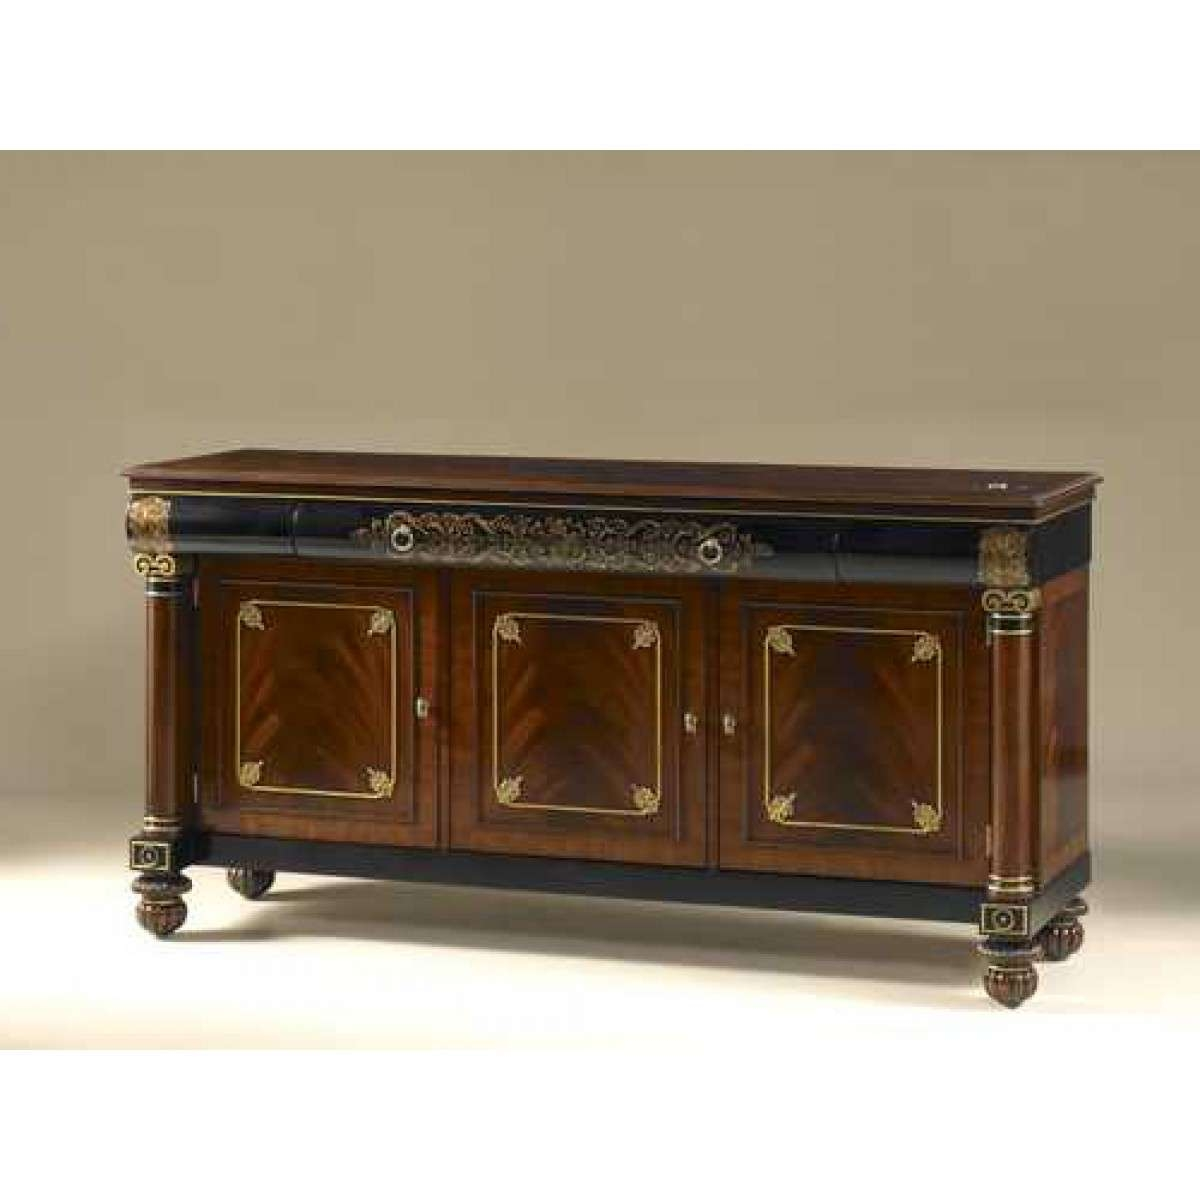 Smith Mahogany And Black Lacquer Finished Tv Stand, Handpainted Throughout Mahogany Tv Stands (View 14 of 15)